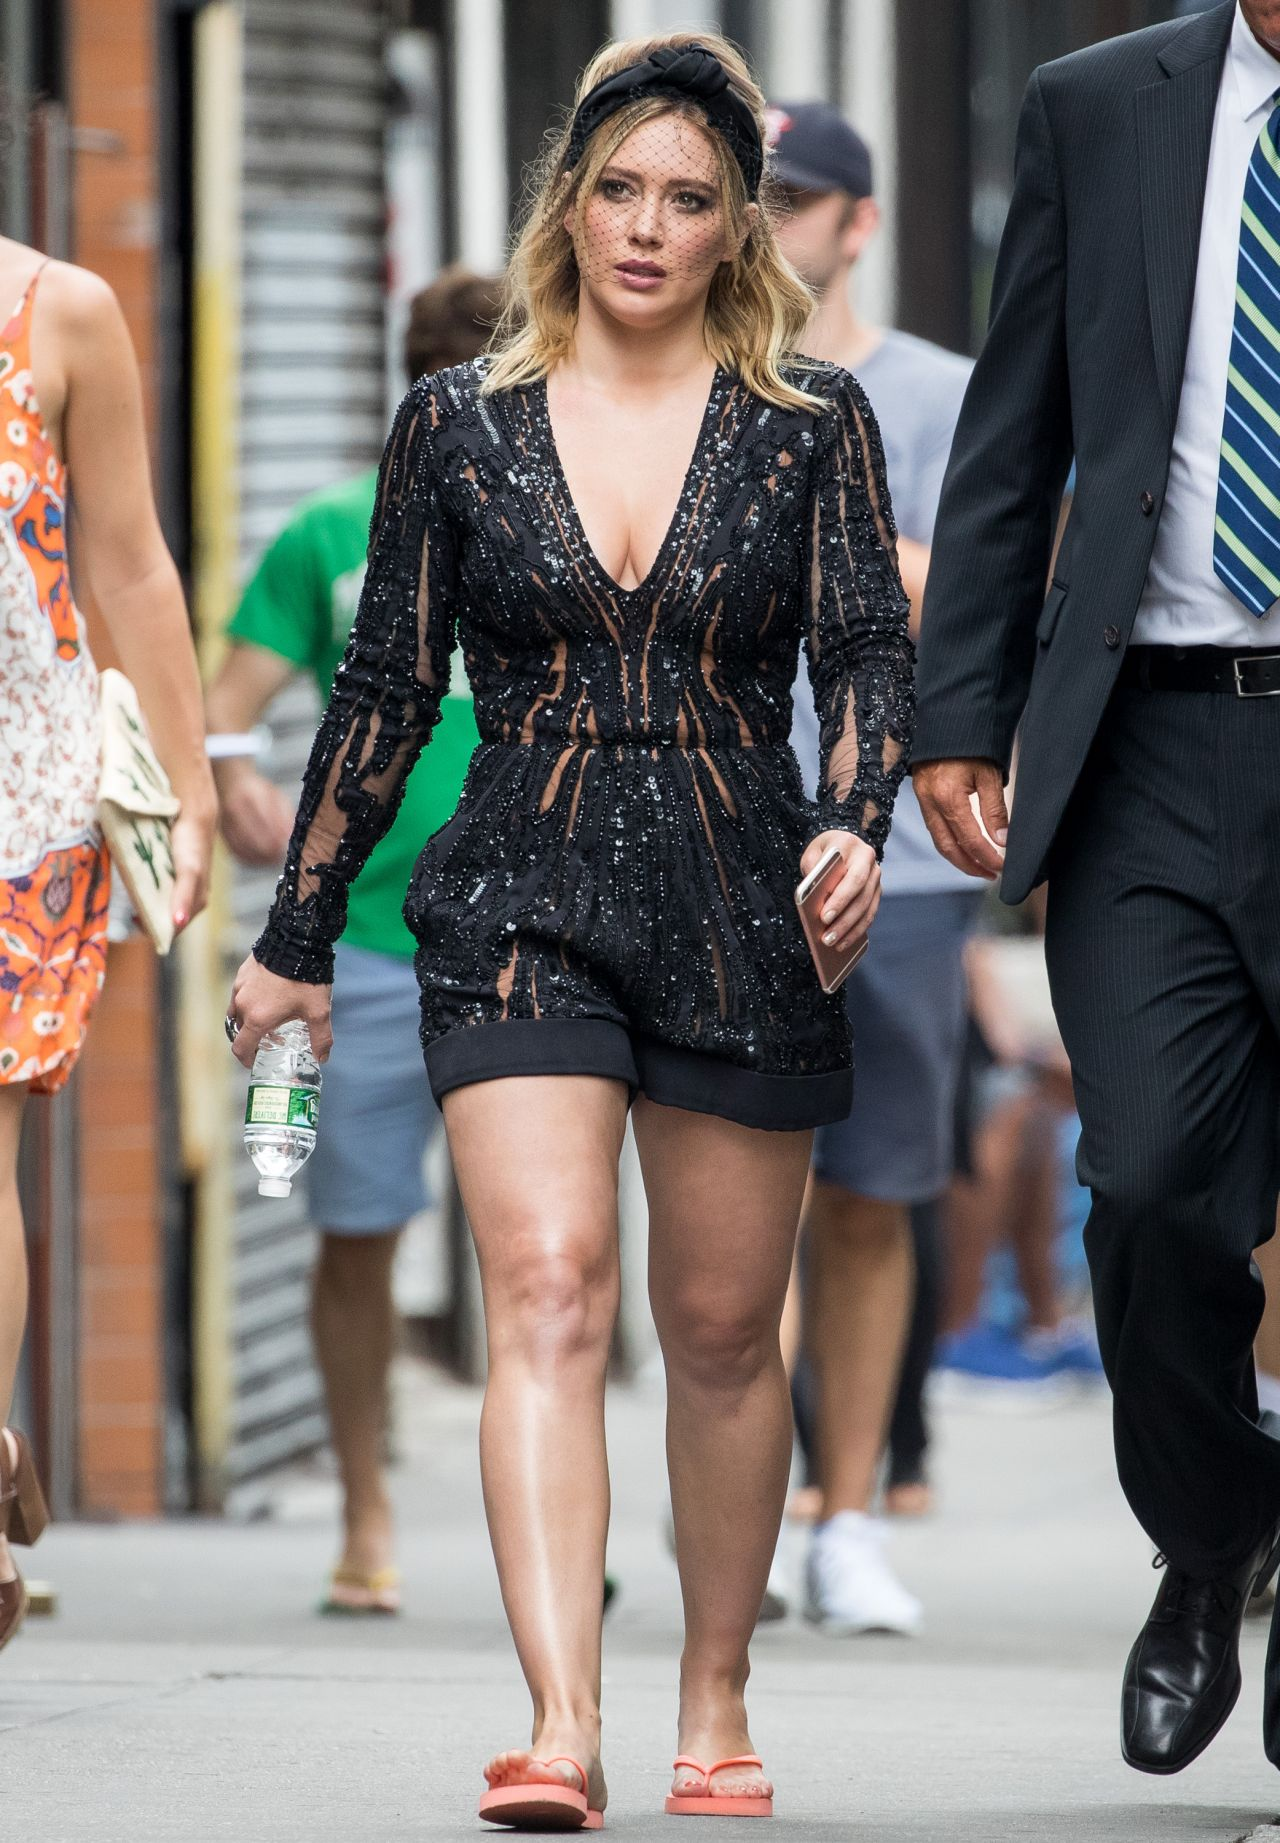 Hilary Duff - 'Younger' Set Photos - New York City, July 2016 хилари дафф